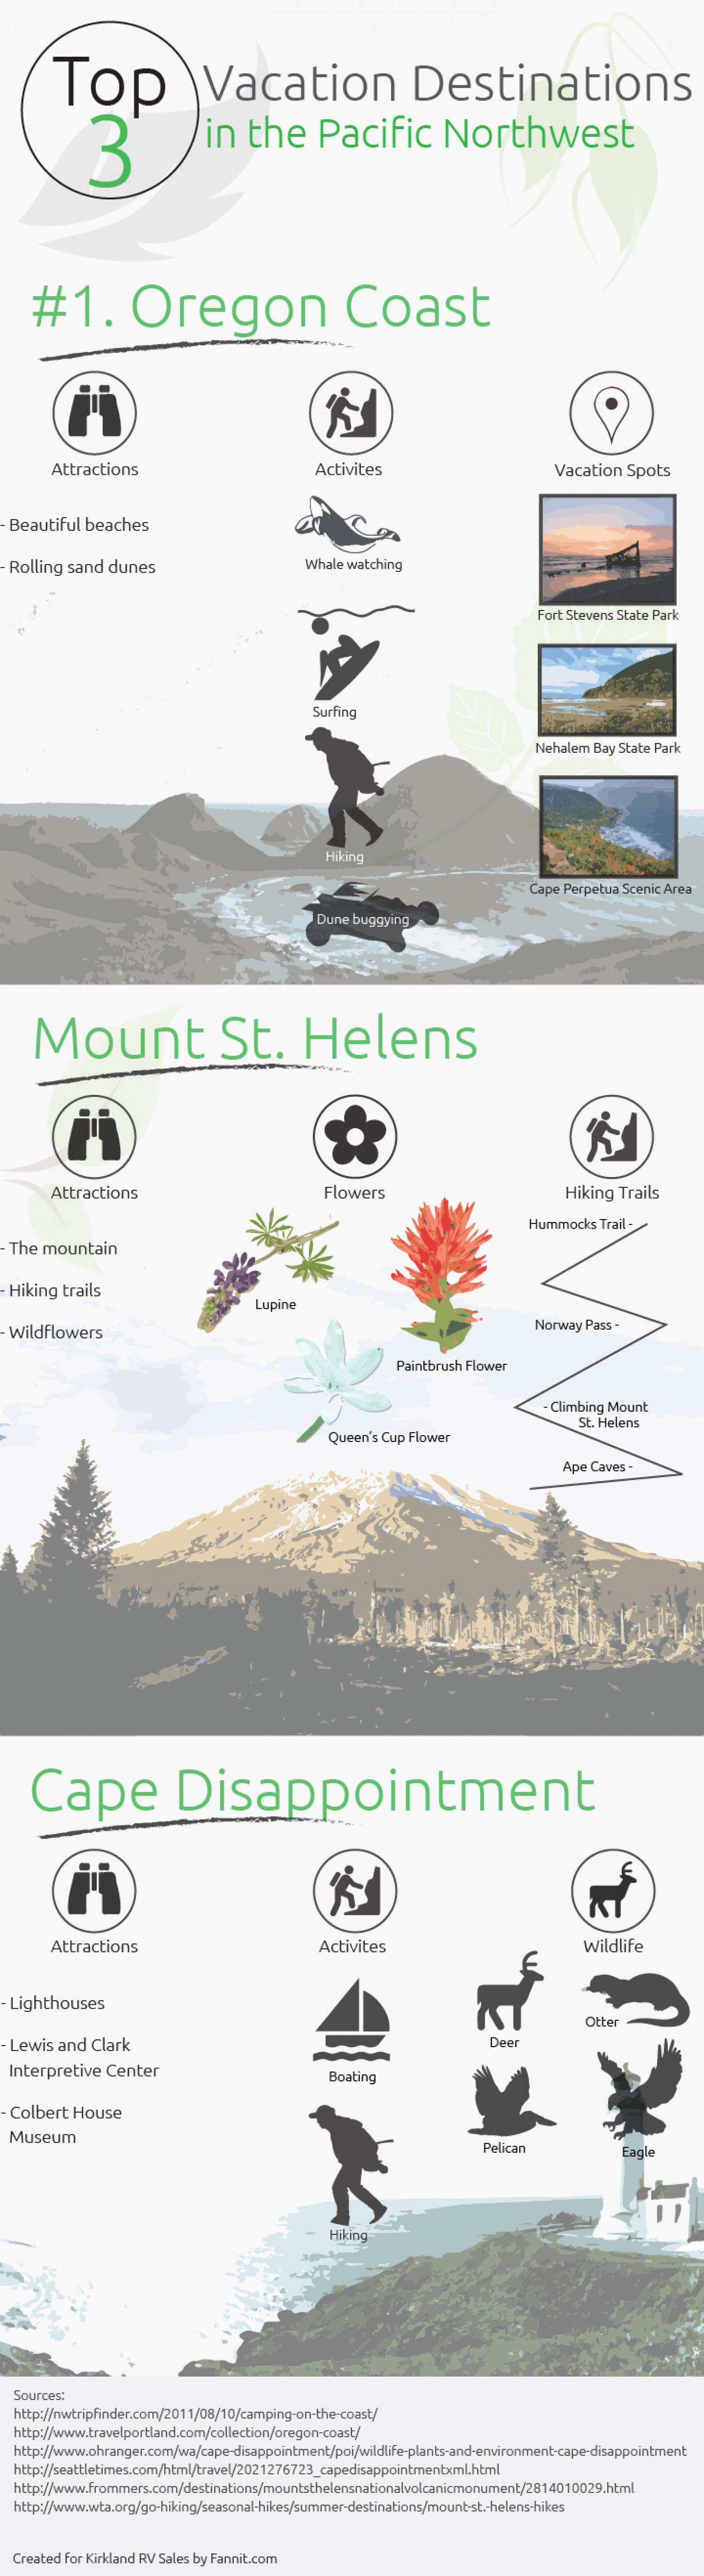 Top 3 Vacation Destinations in the Pacific NW Infographic